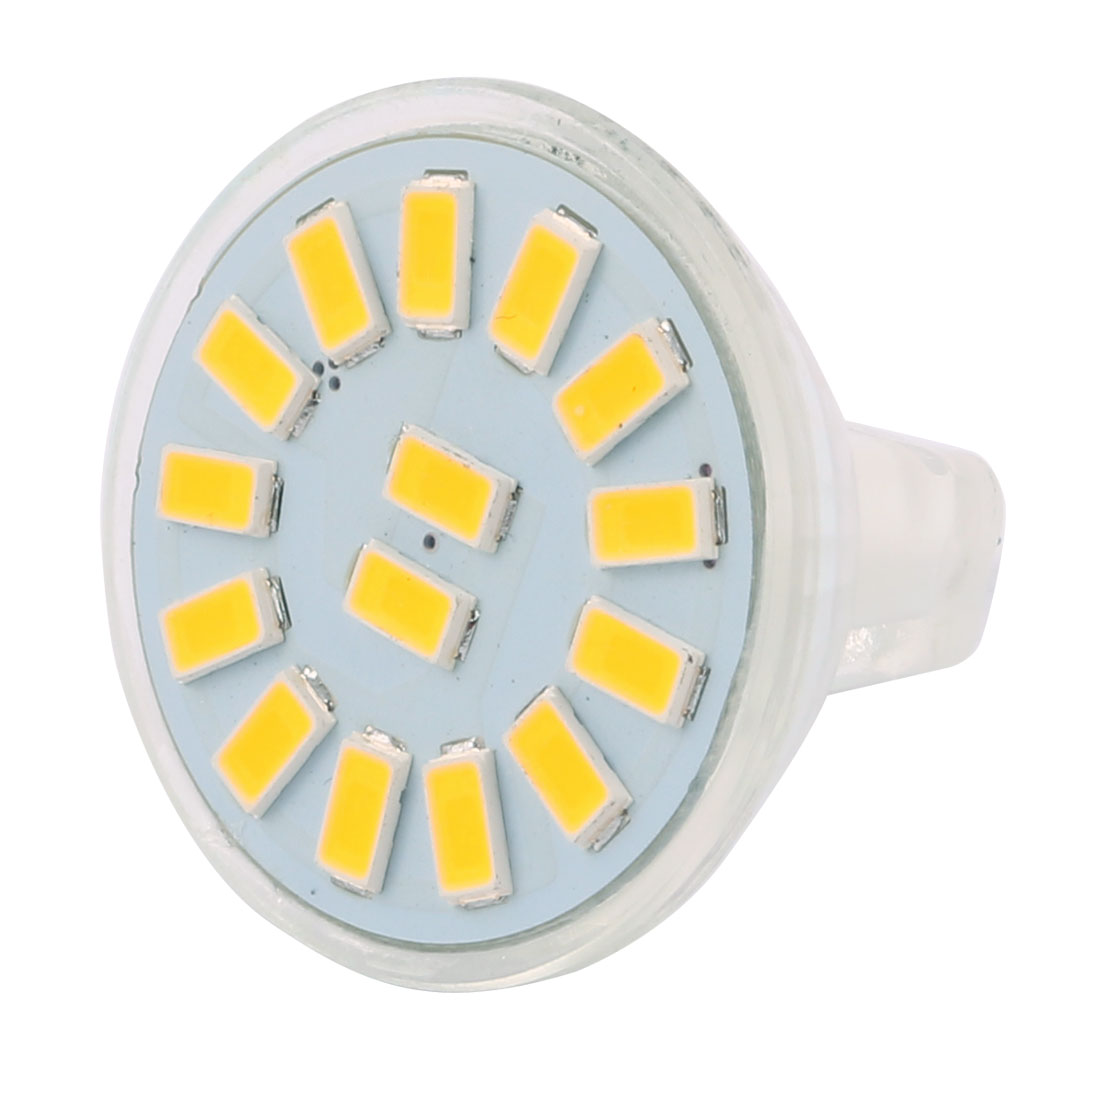 DC 12V 4W MR11 5733 SMD 15 LEDs LED Bulb Light Spotlight Lamp Lighting Cool White